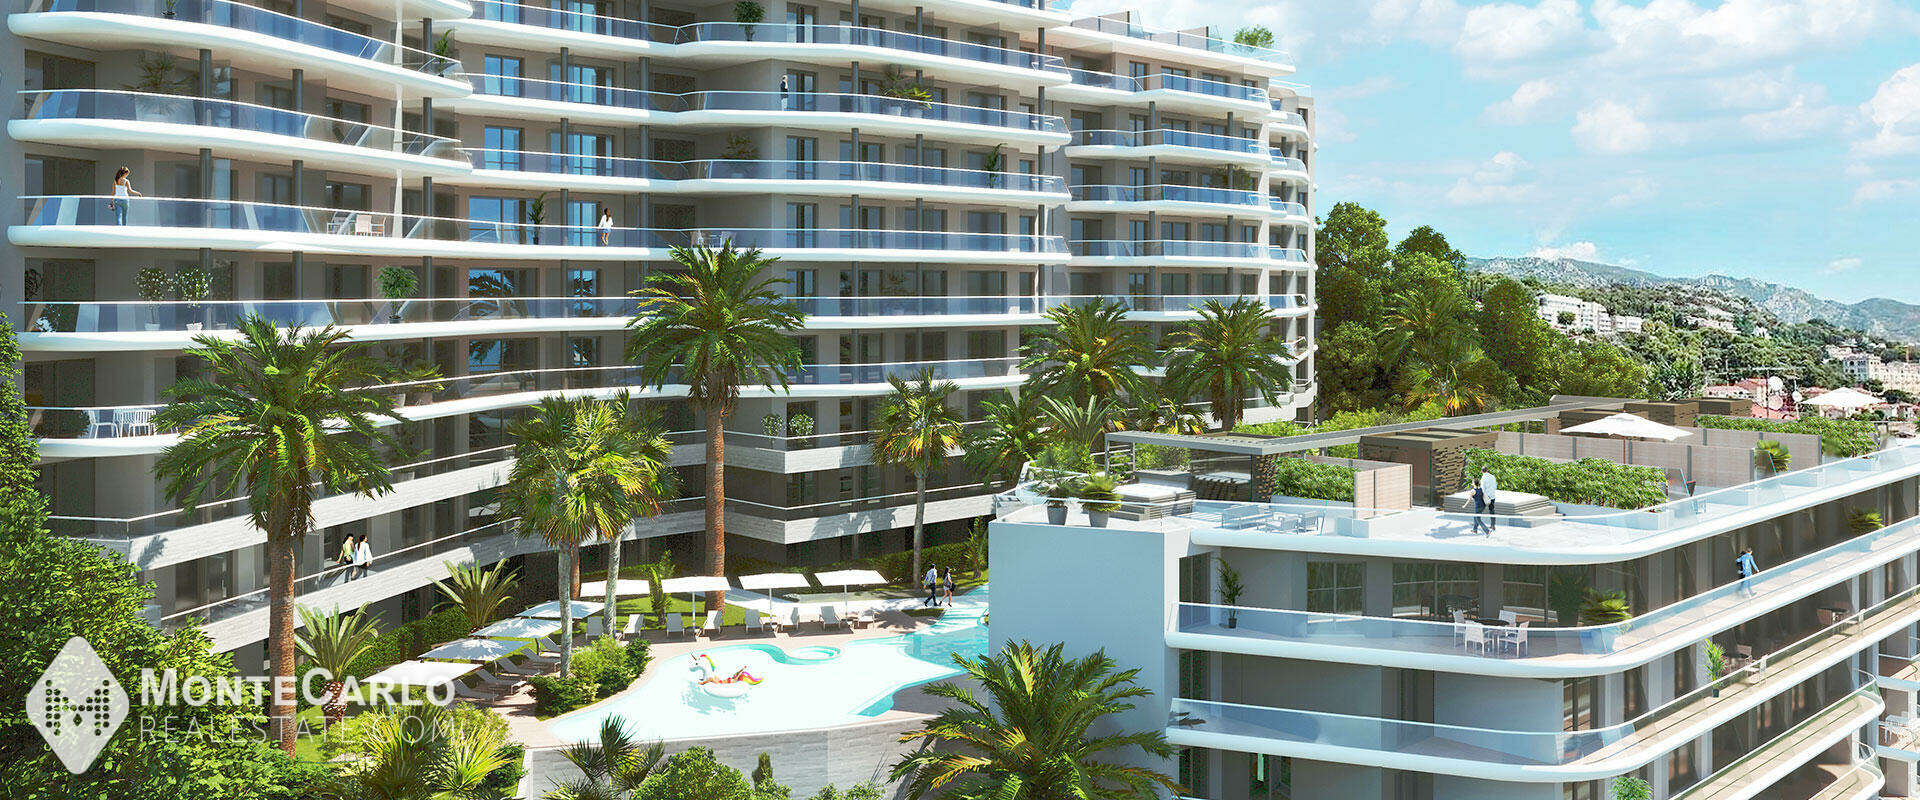 For sale Beausoleil - Apartment / 2 rooms : 585 000 €   Monte-Carlo Real Estate [2230620]